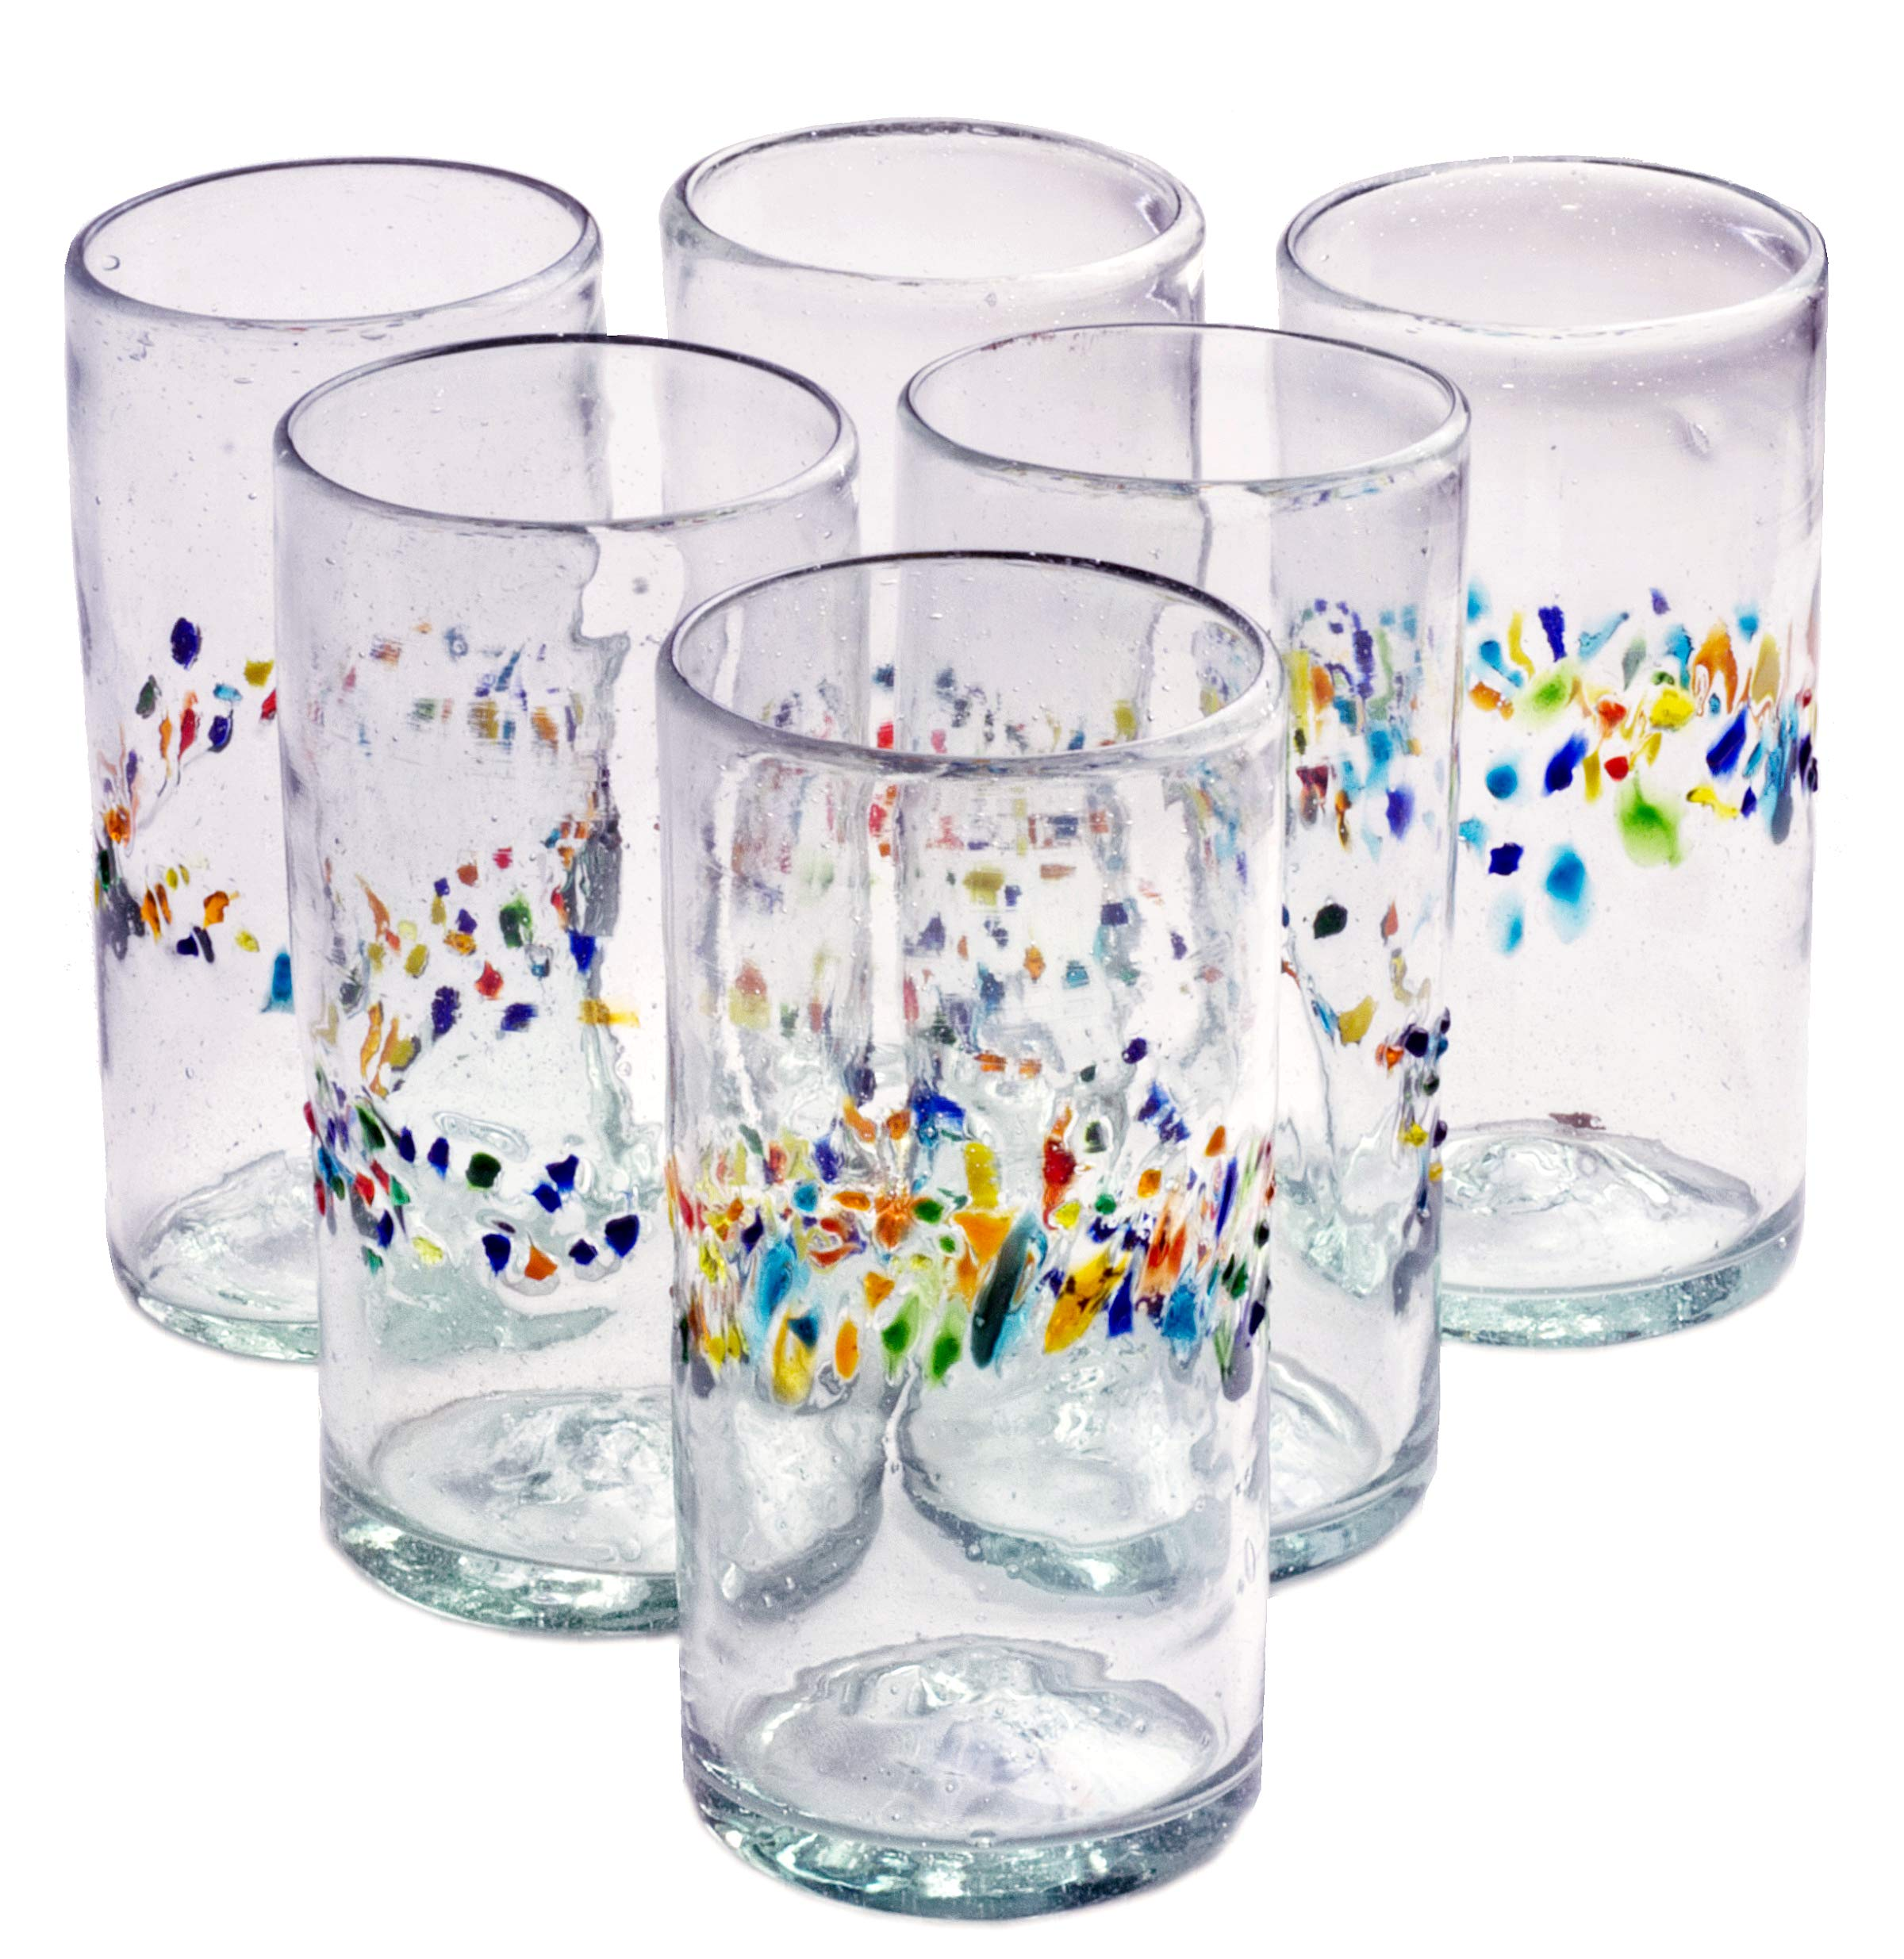 Orion Tutti Frutti 22 oz Tall Tumbler - Set of 6 by Orions Table (Image #1)